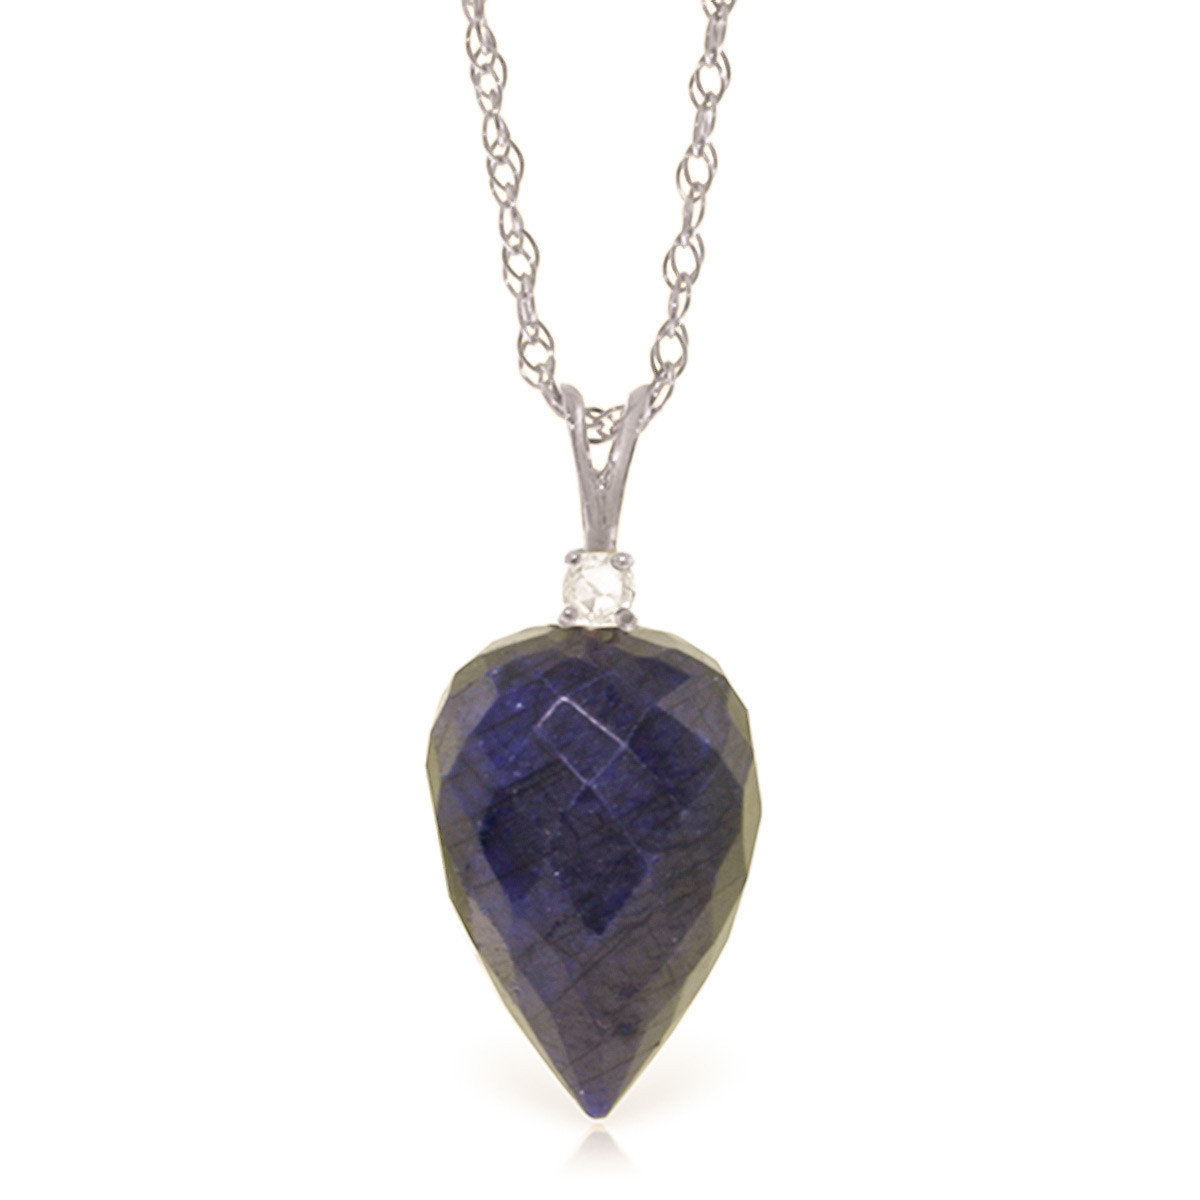 Pointed Briolette Cut Sapphire Pendant Necklace 12.95 ctw in 9ct White Gold